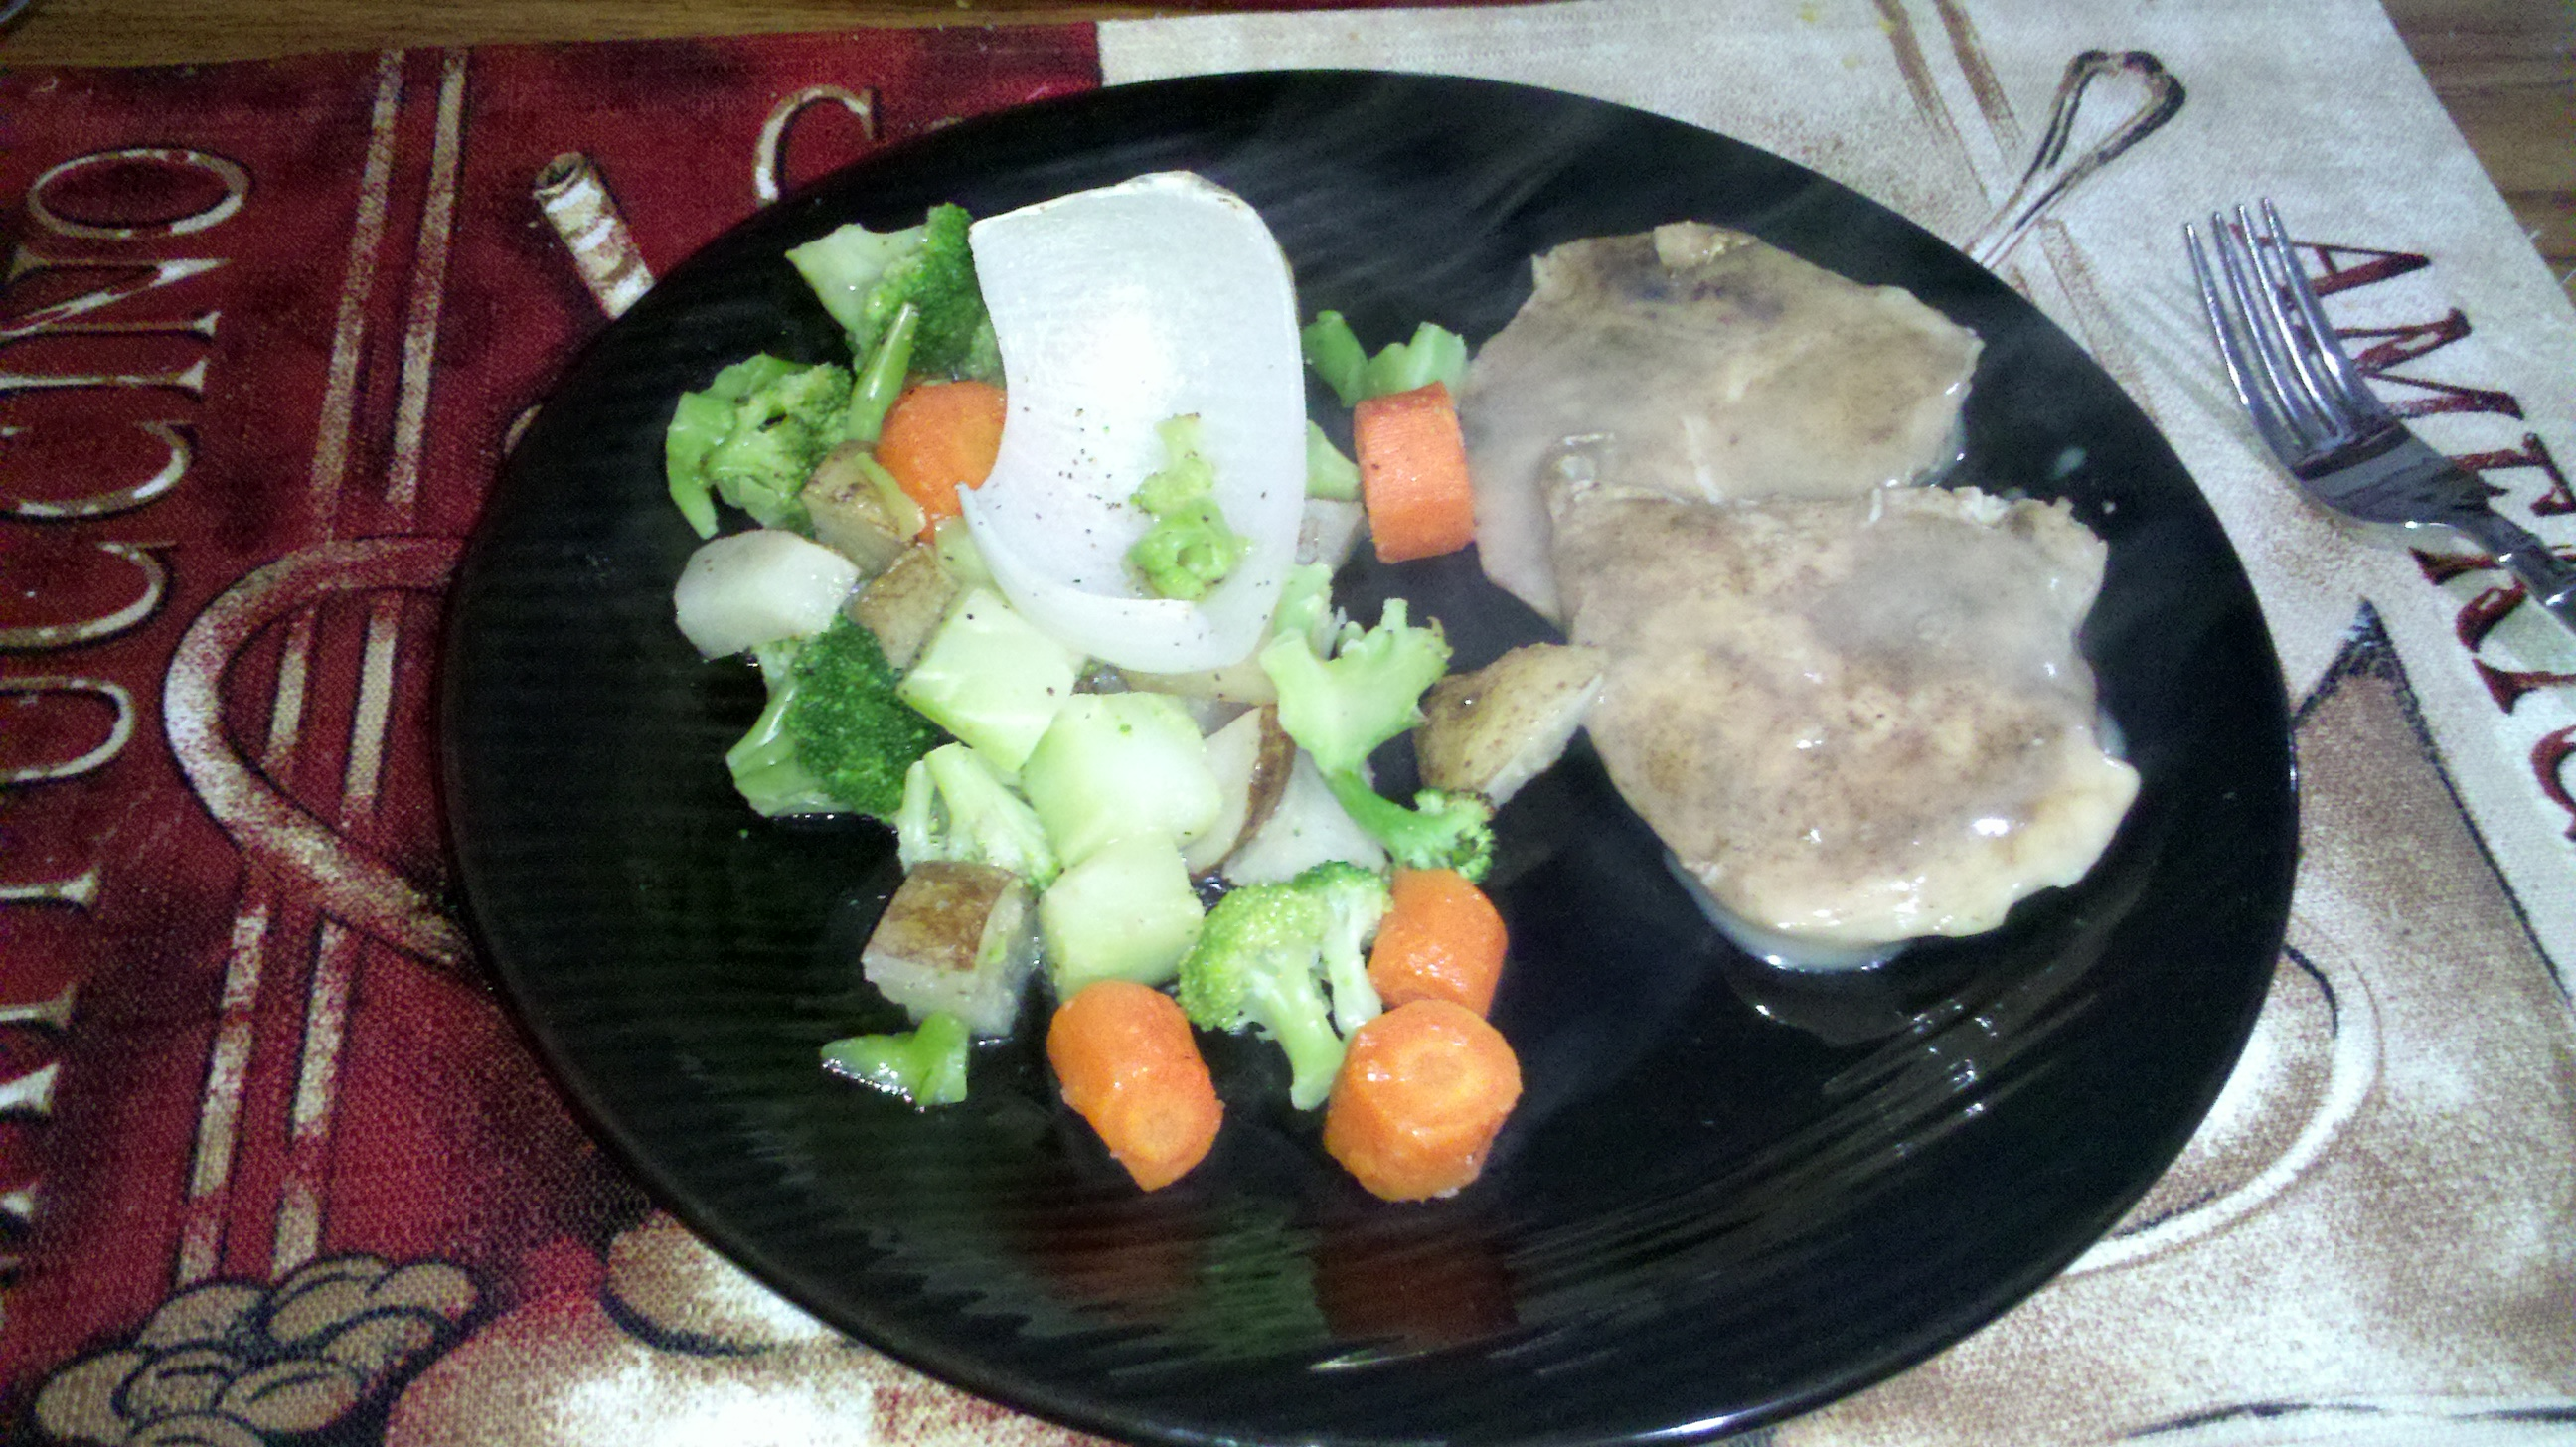 new britain ct :: potatoes, broccoli, carrots, and onions with chicken and gravy :)